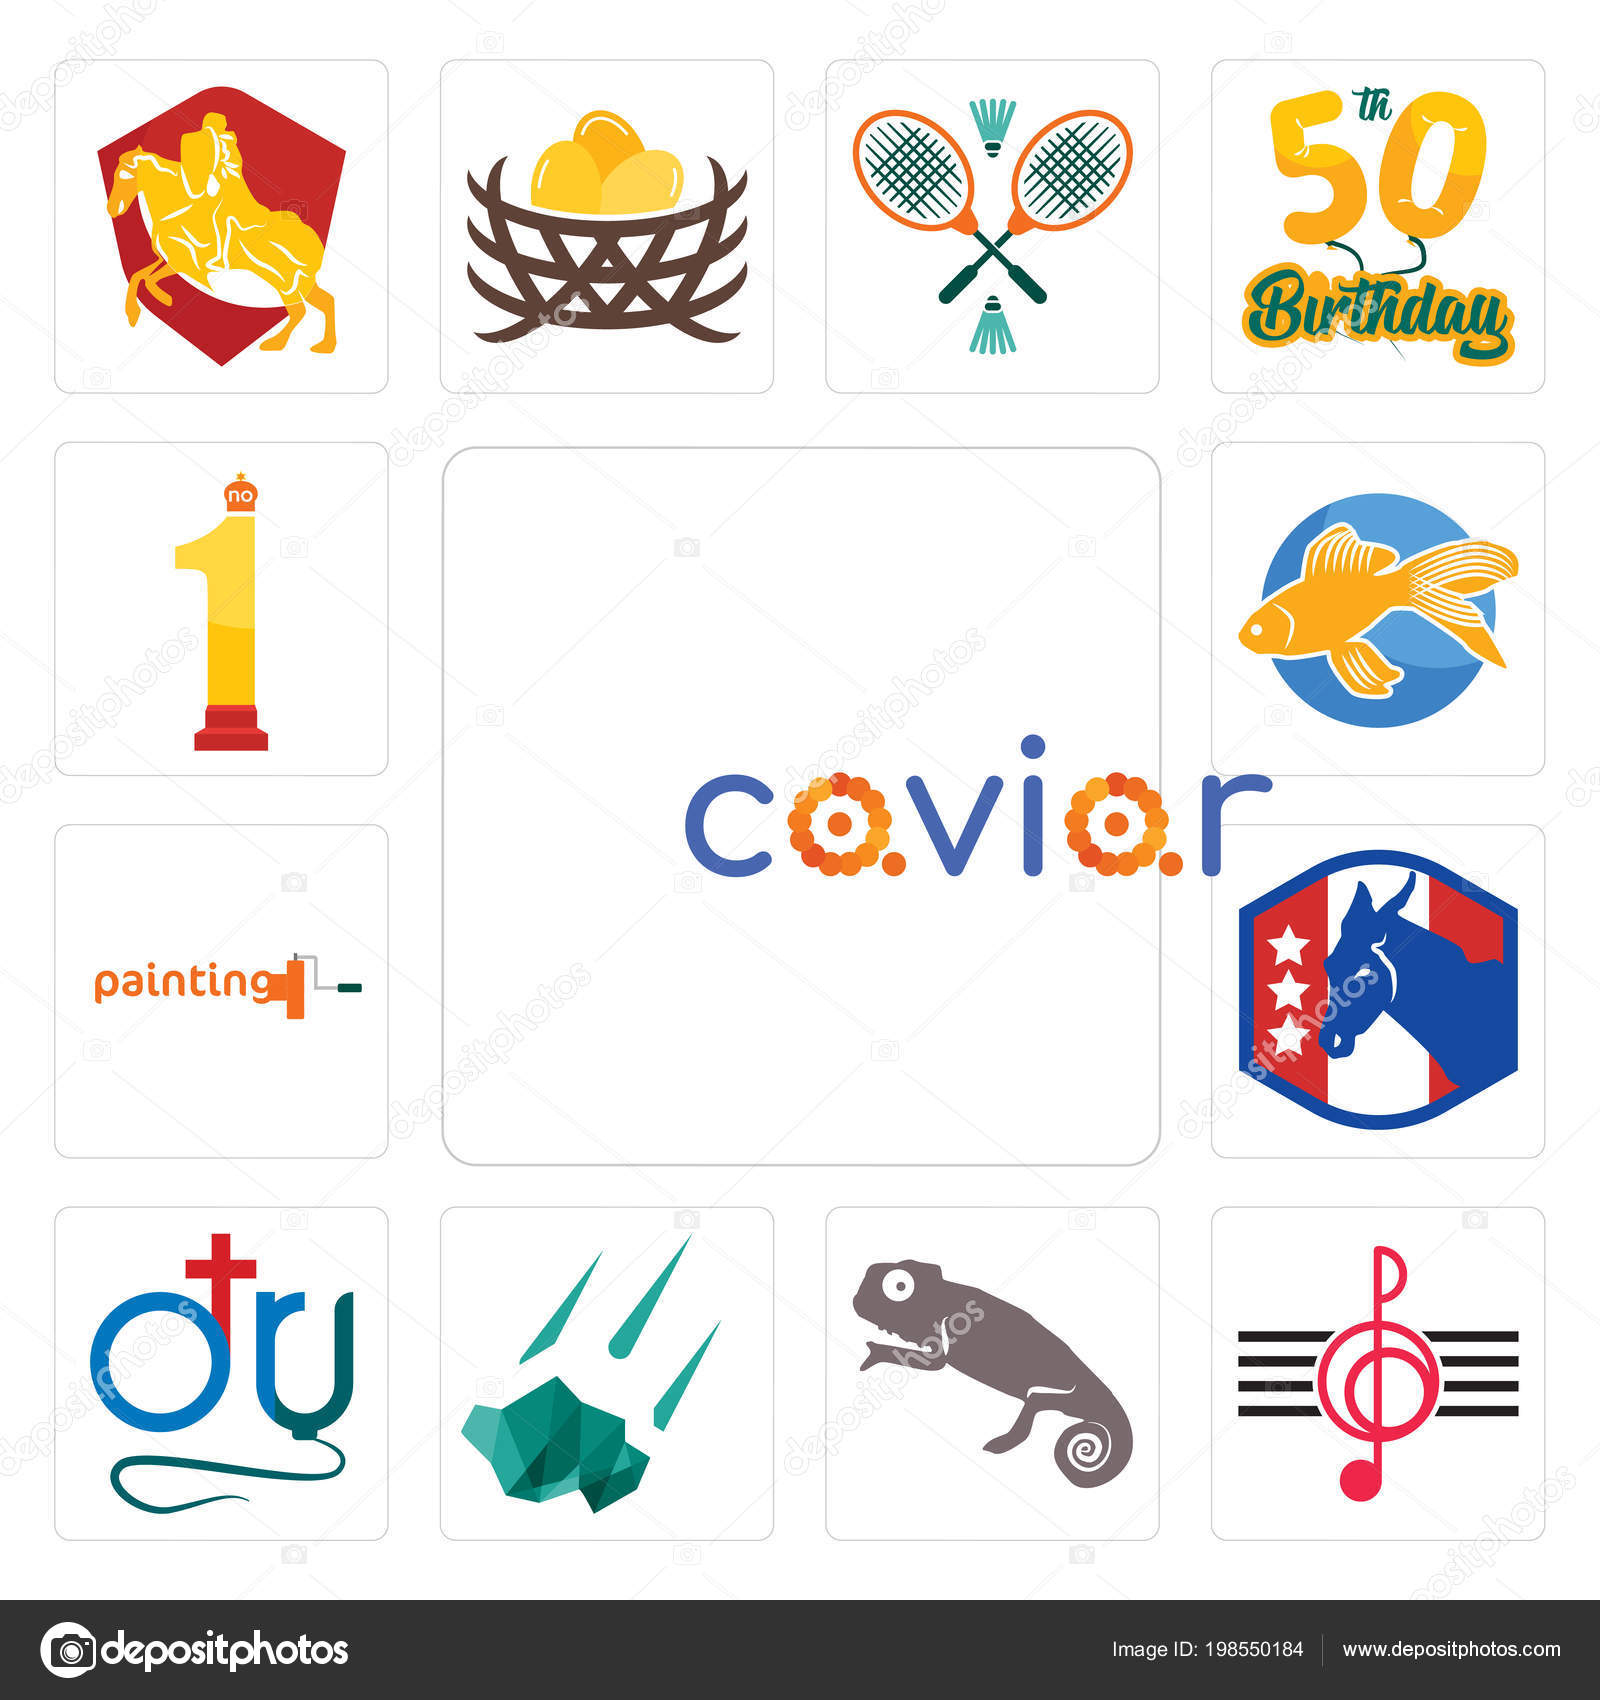 dd7e1d1d3 Set Of 13 simple editable icons such as caviar, treble clef, chameleon,  meteorite, dr., democratic party, painting company, goldfish, no.1 can be  used for ...